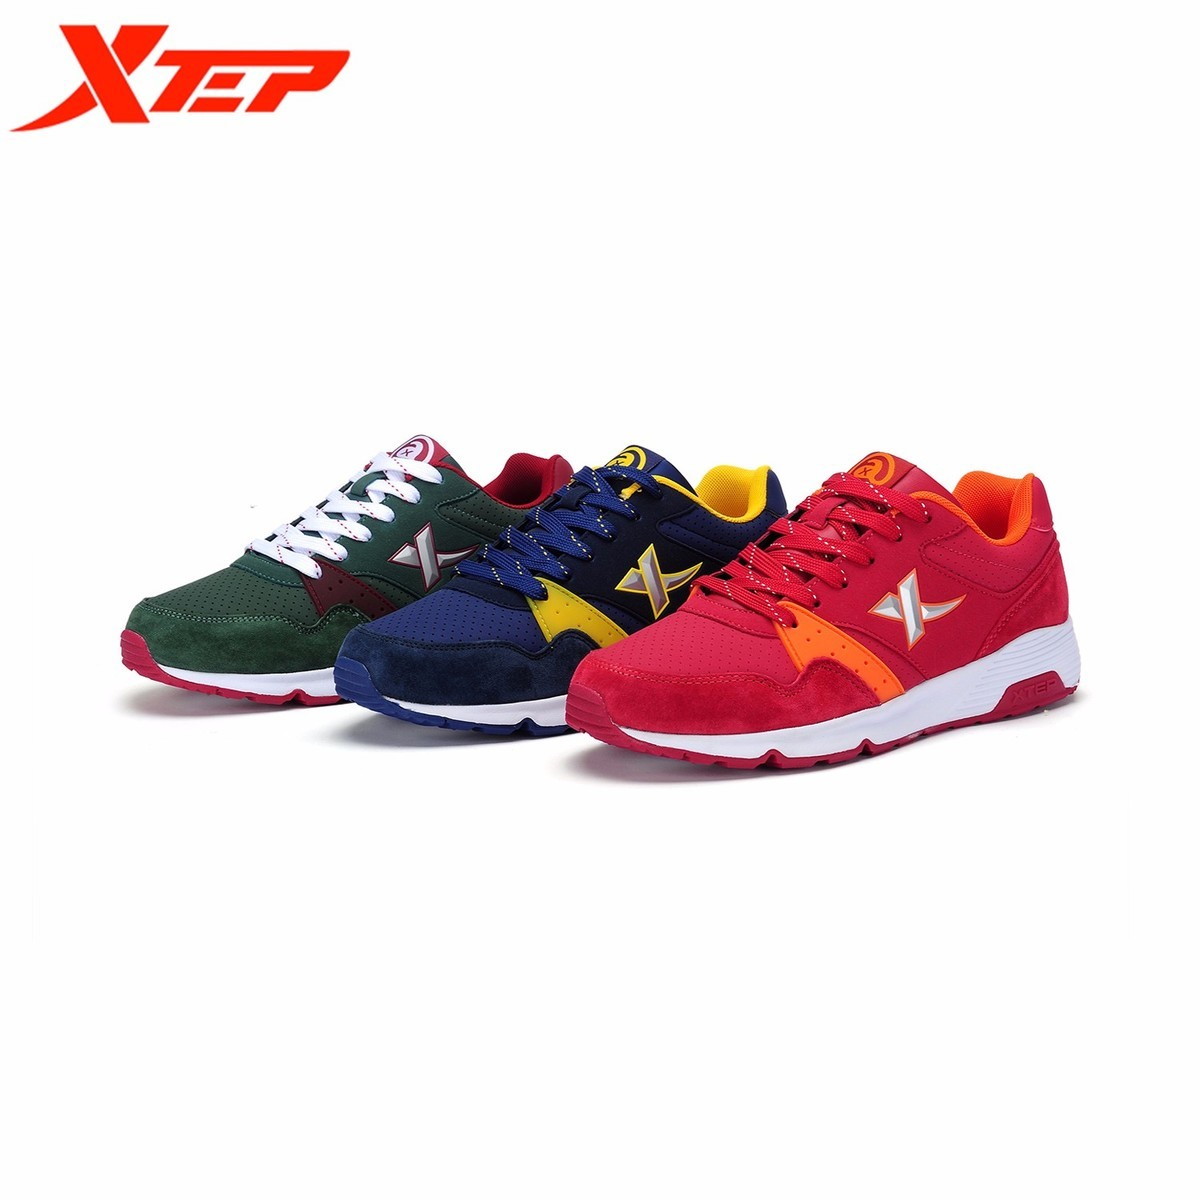 XTEP Brand Light Running For Men Breathable Athletic Outdoor Sports Run Trainers Men's Shoes 2017 New All Season Male Sneakers